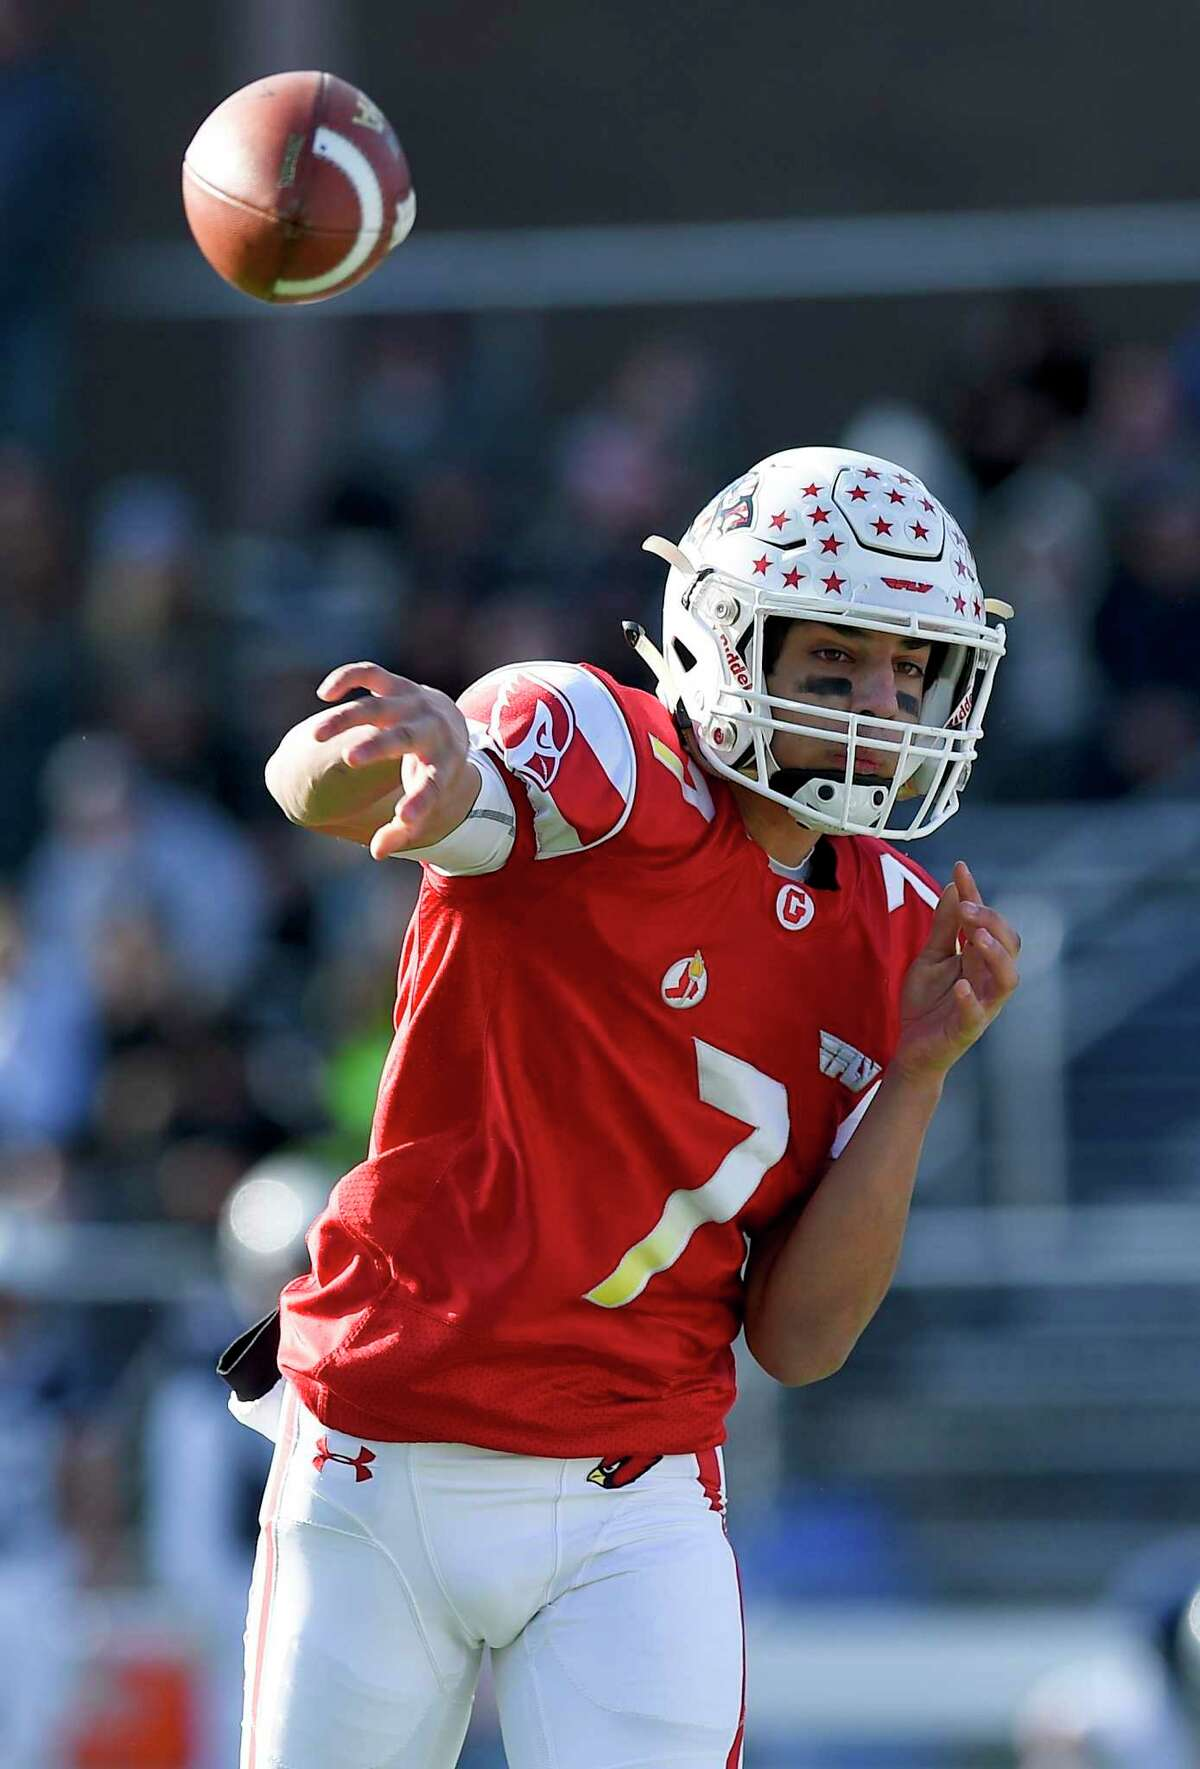 Greenwich quarterback James Rinello (7) throws in the first half against Staples during their traditional Thanksgiving Day football game at Staples Stadium in Westport, Conn. on Nov. 28, 2019. Greenwich defeated Staples 38-14.